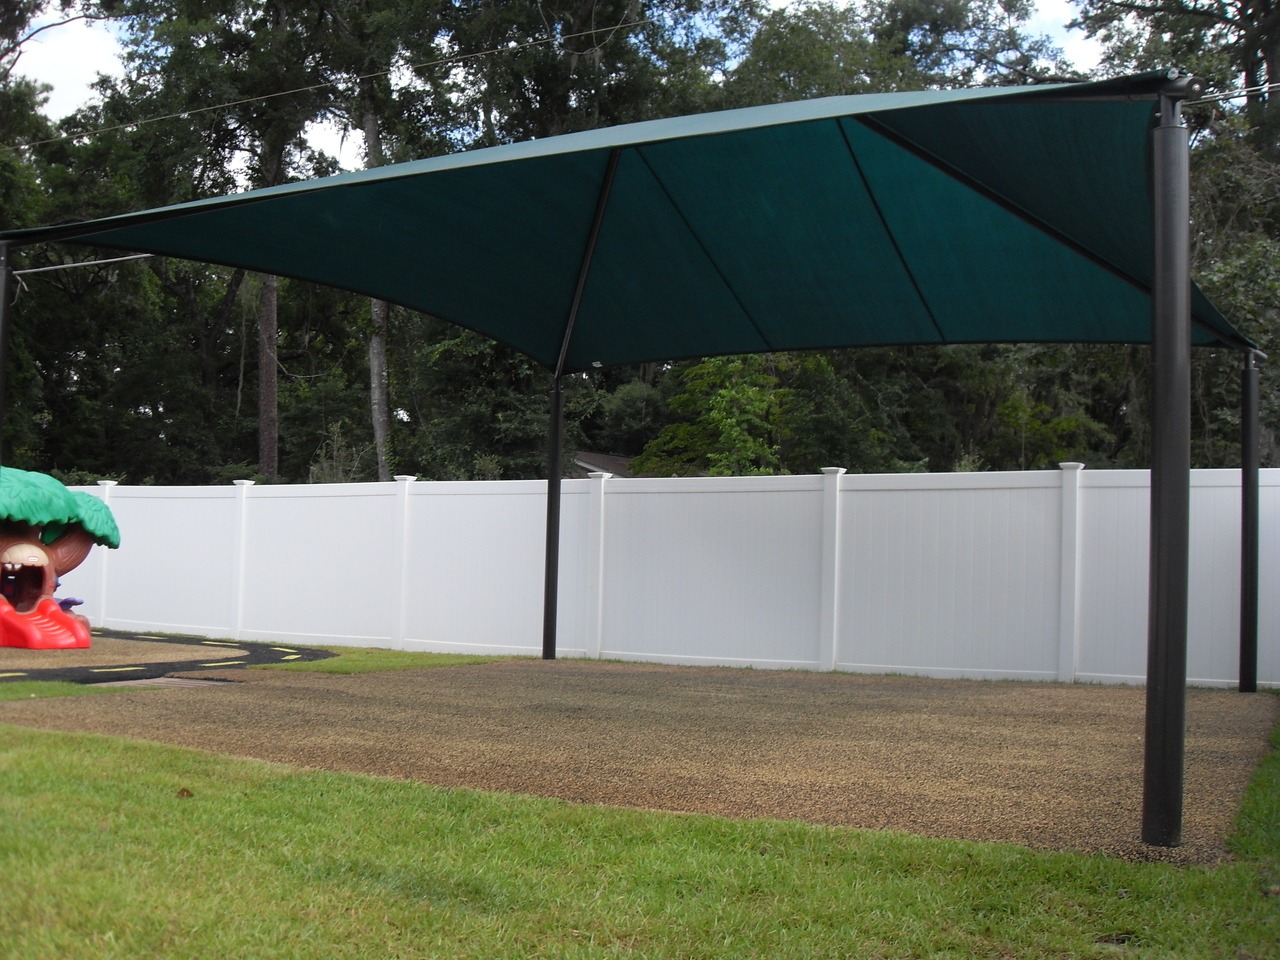 Square shade structure pro playgrounds the play and for Shade structures